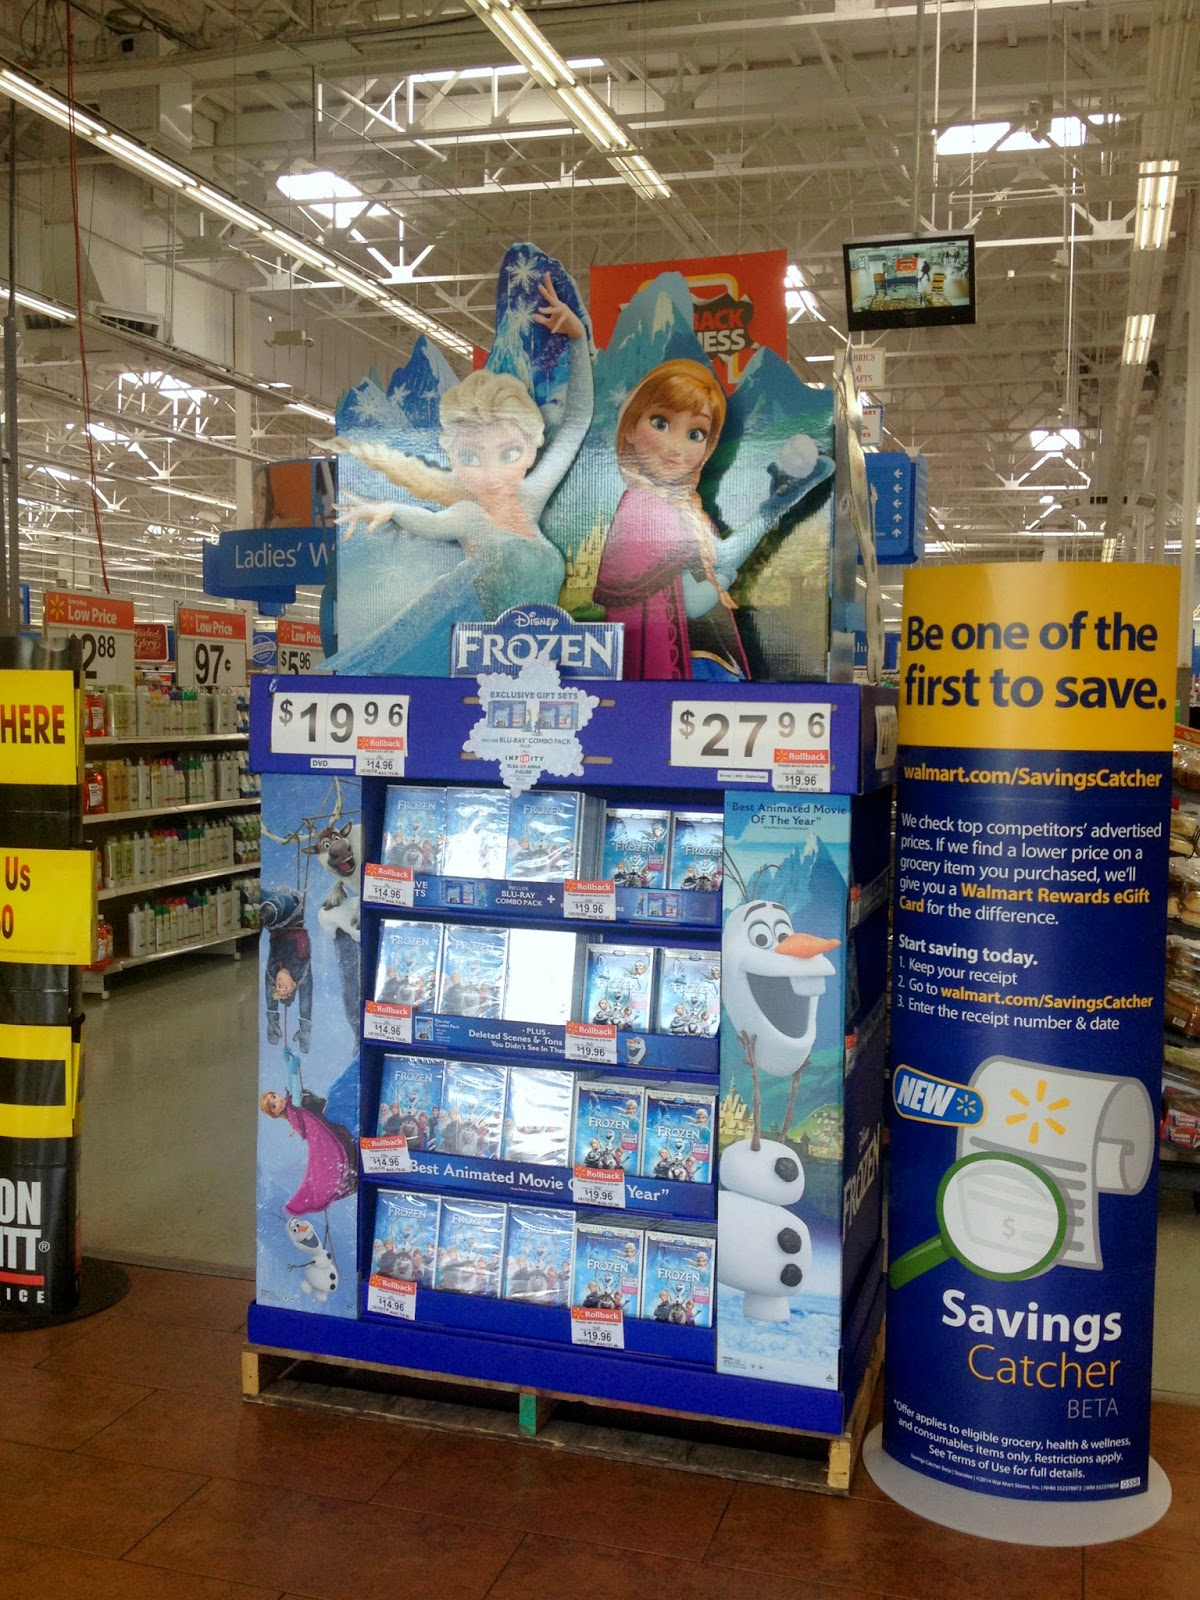 Disney FROZEN DVD at Walmart